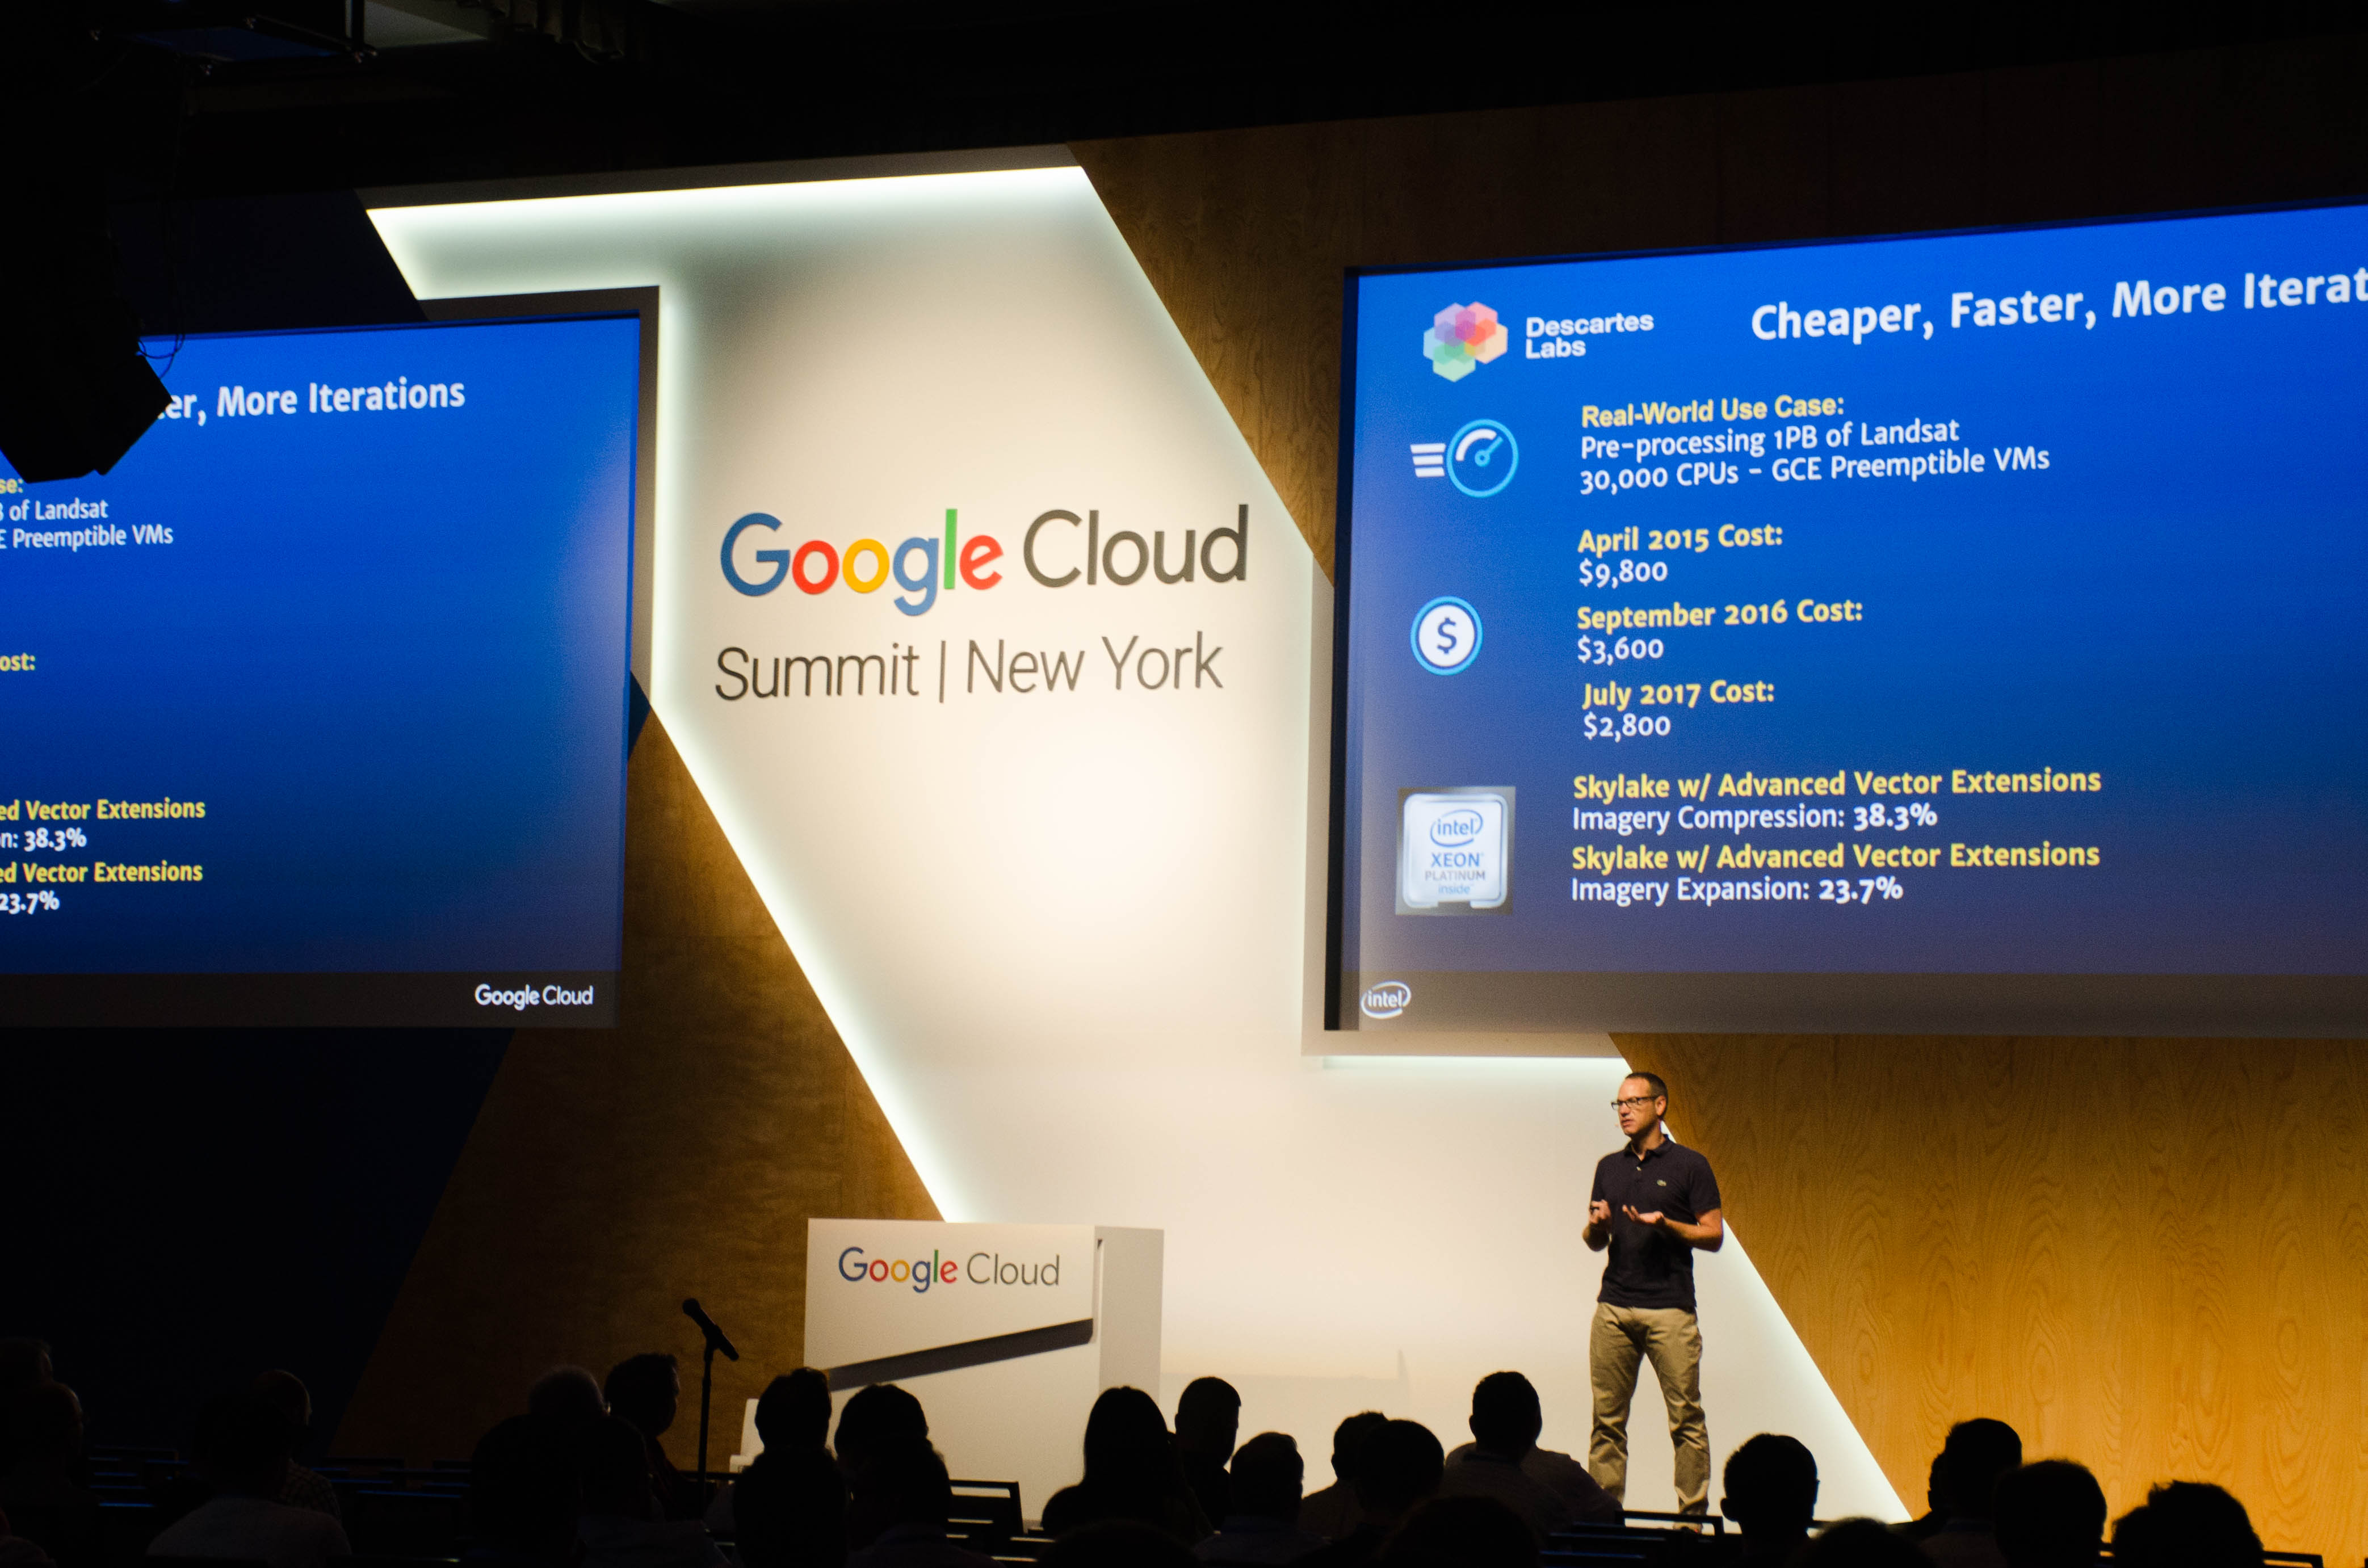 Google's cloud summit: How Google is changing the way we utilize the